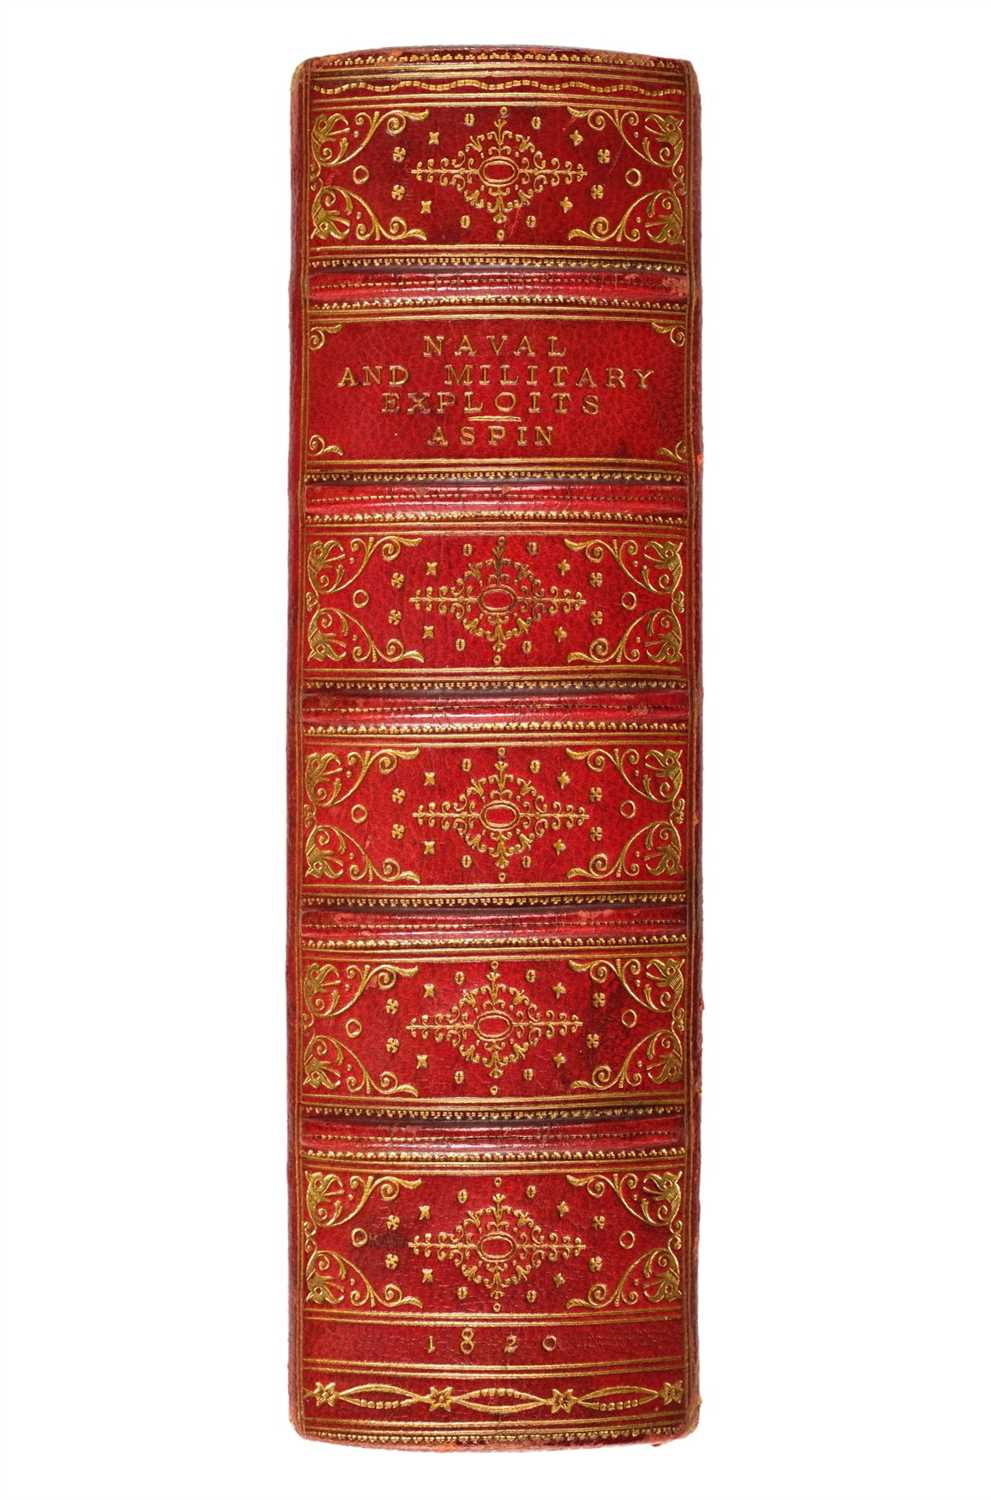 Lot 357 - Aspin (Jehoshaphat). Naval and Military Exploits, 1820